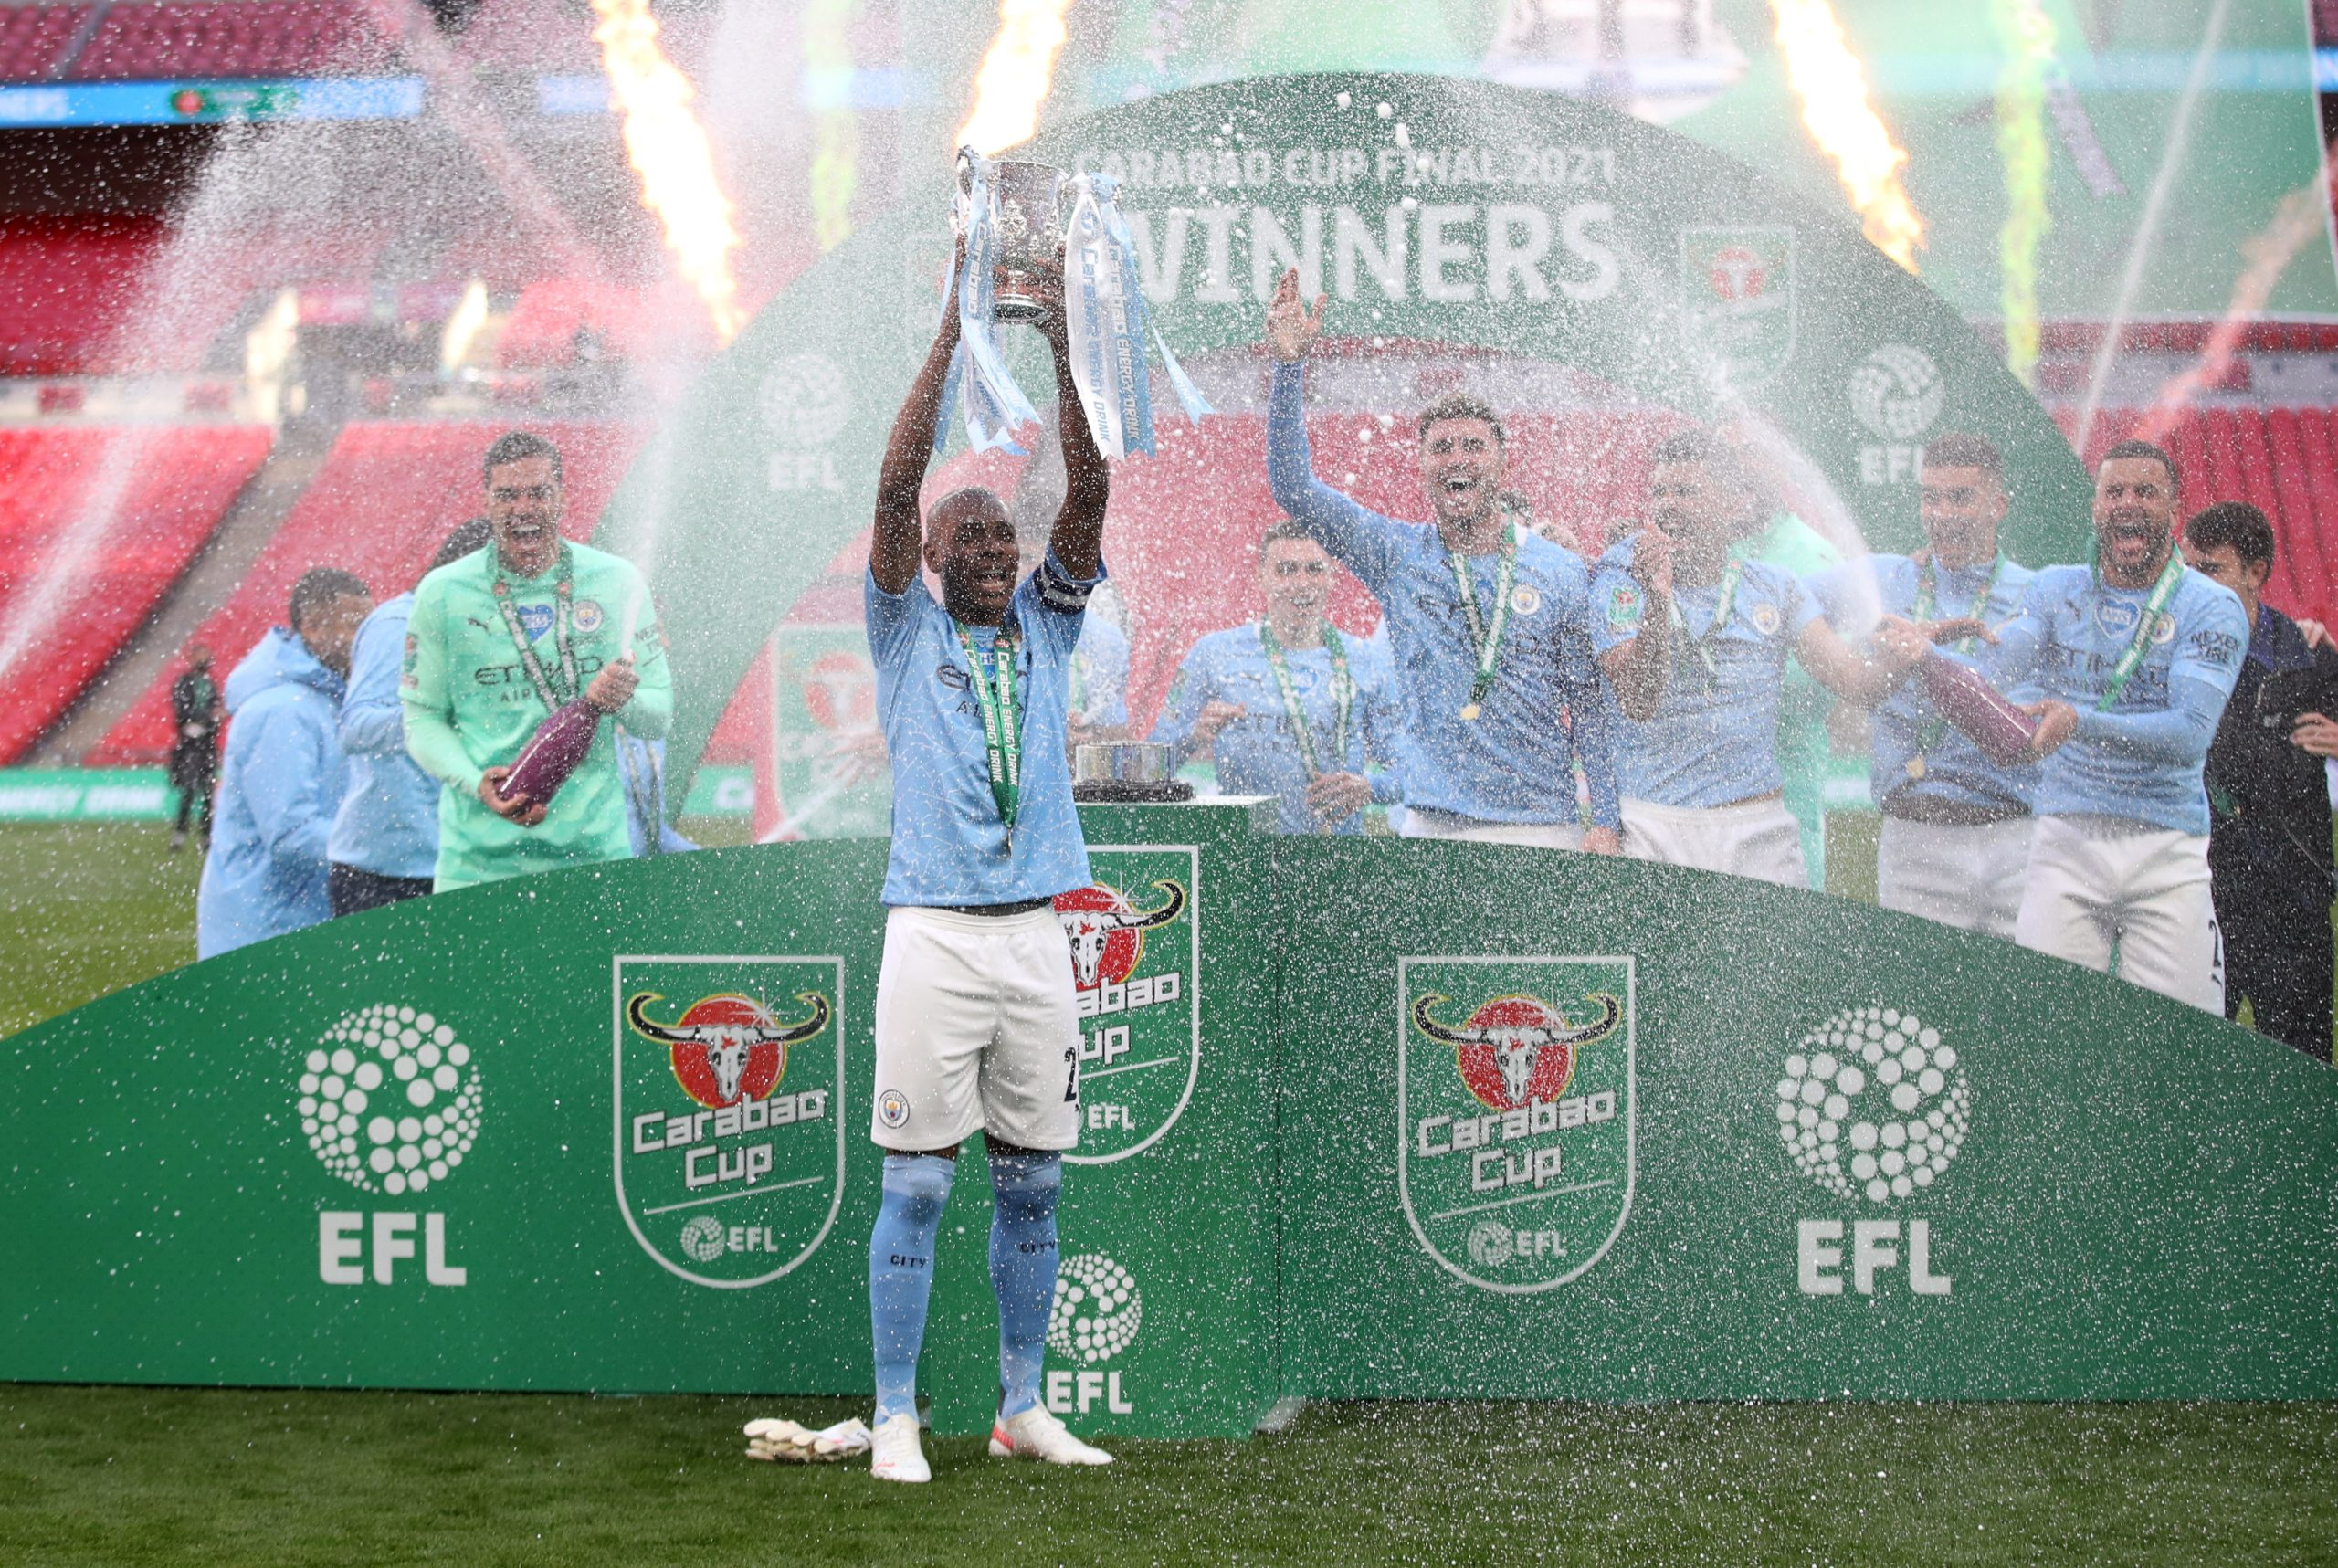 Man City is the Carabao Cup Winner 2021